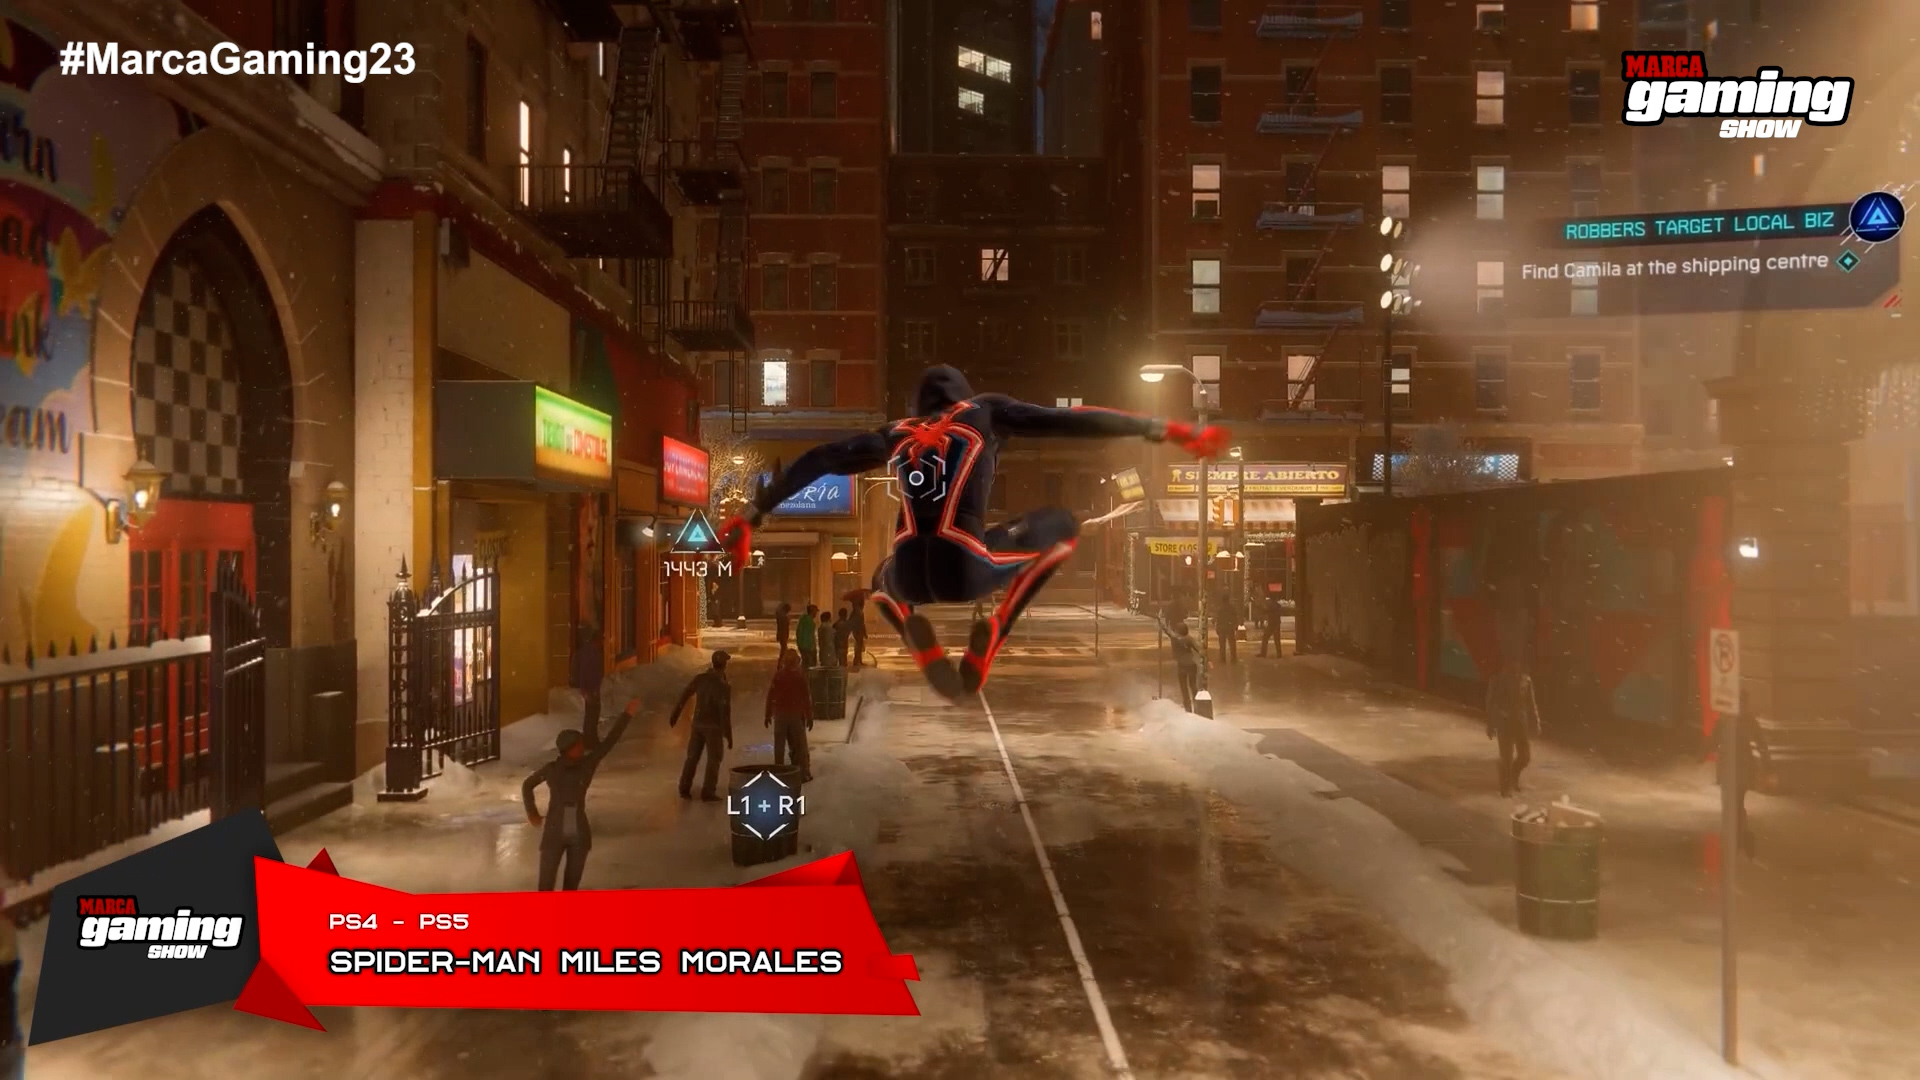 Spiderman Miles Morales (PS4 - PS5)